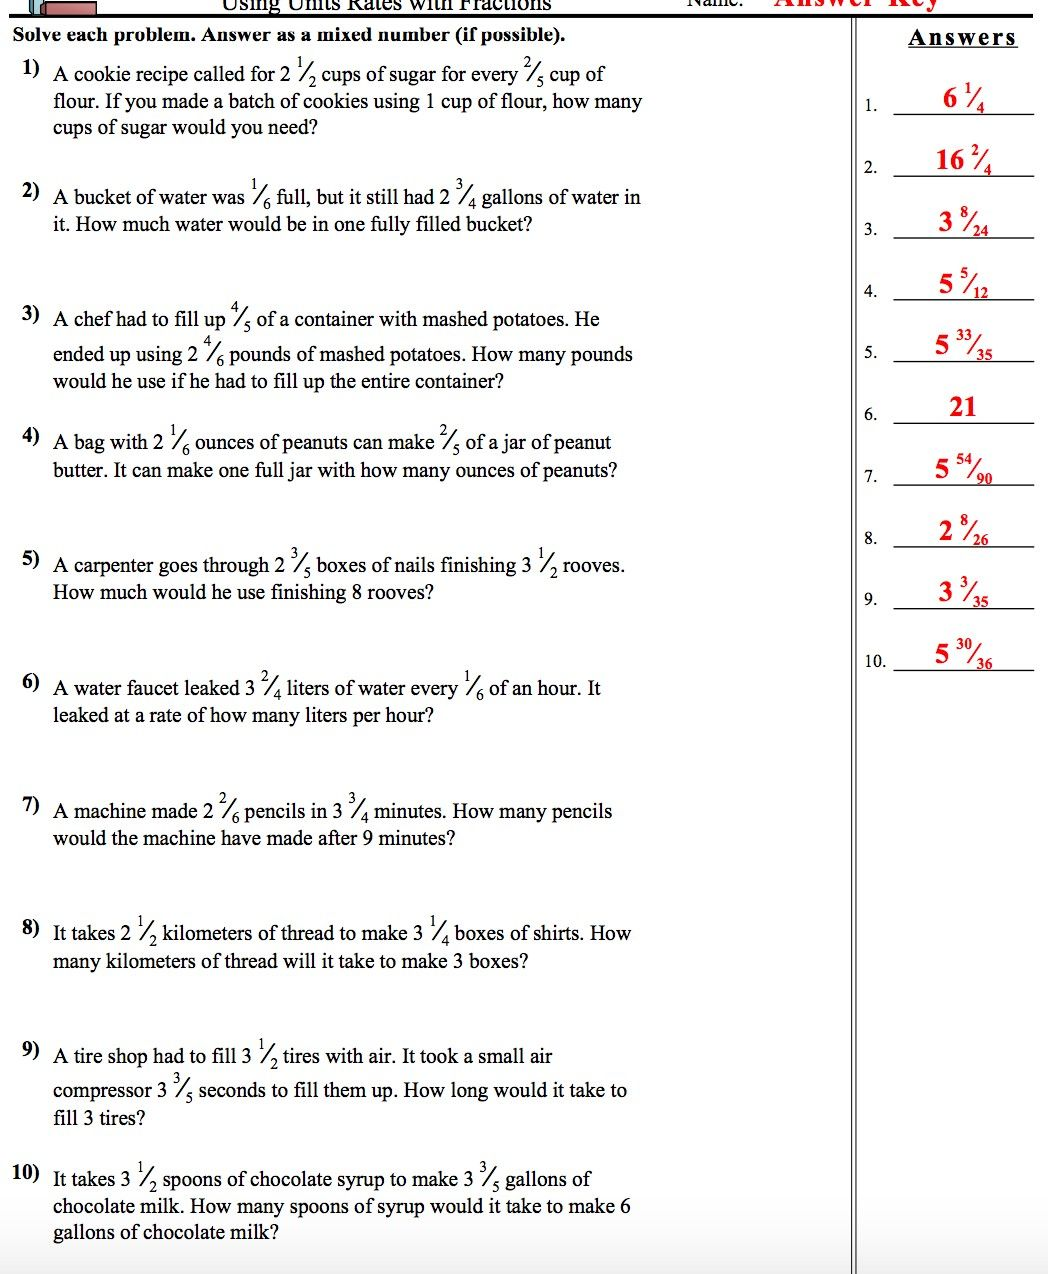 medium resolution of https://dubaikhalifas.com/pin-by-cassie-kennedy-on-7th-grade-compacted-math-common-core-worksheets-fractions-worksheets/